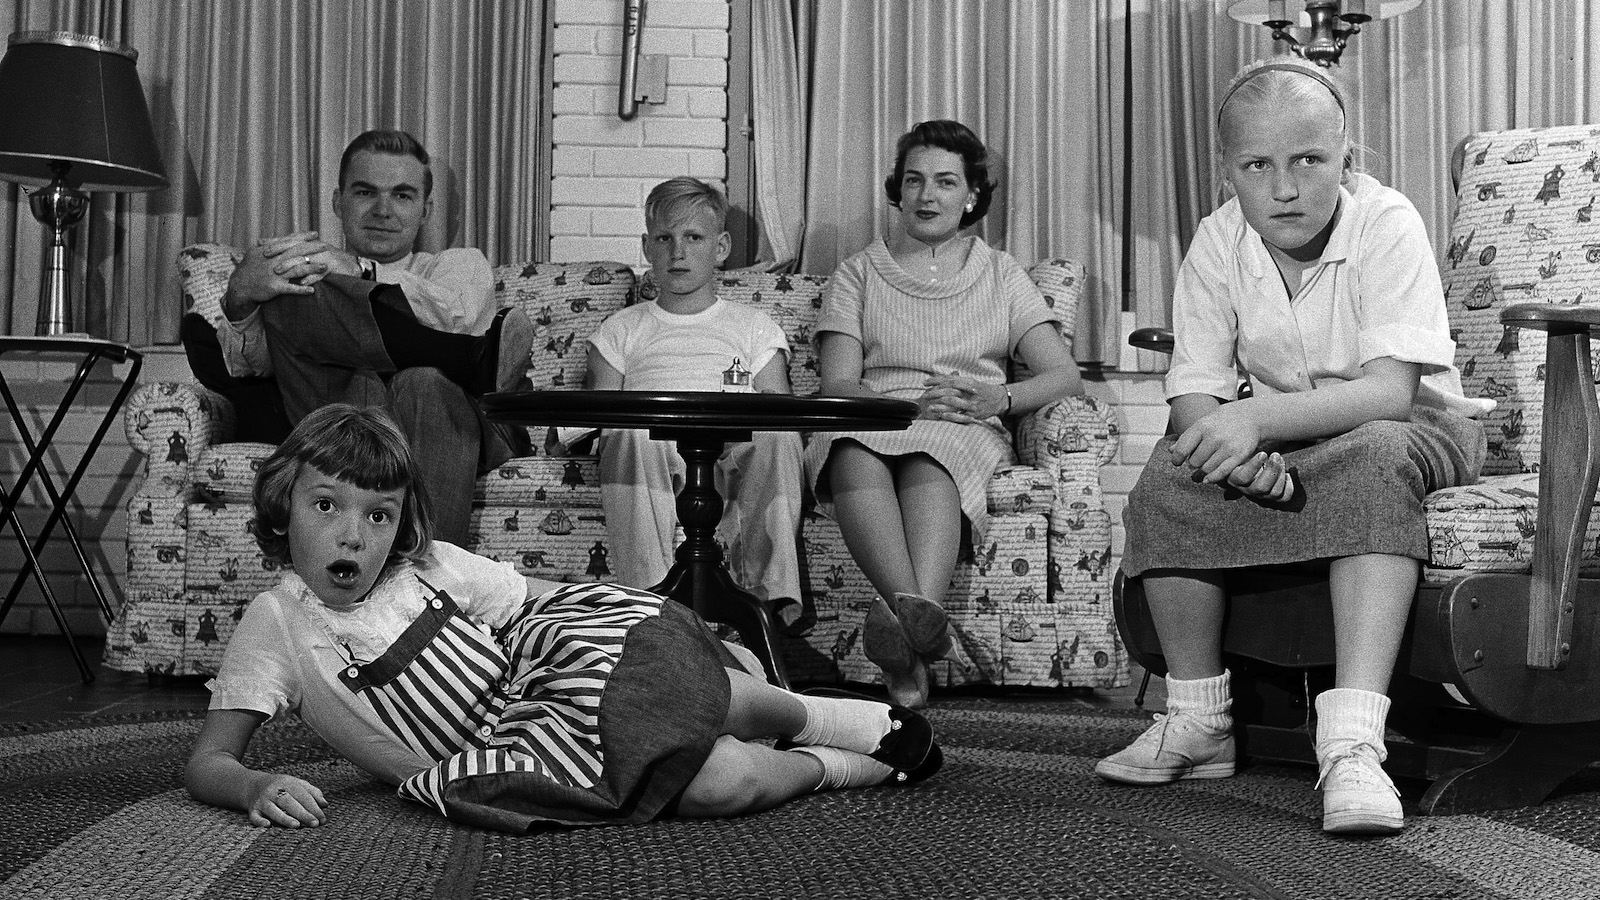 Like most other families, when Gov. J. Howard Edmondson, his wife and children have an evening together, they spend much of it before the television set, as seen May 30, 1959. On the couch in the background are the governor, son Jimmy, 11, and the governor's wife, Jeannette. Watching from the chair at right is daughter Jeanne, 9, and on the floor in her favorite TV-watching position of the youngest of the Edmondson, Patty, 7. (AP Photo)